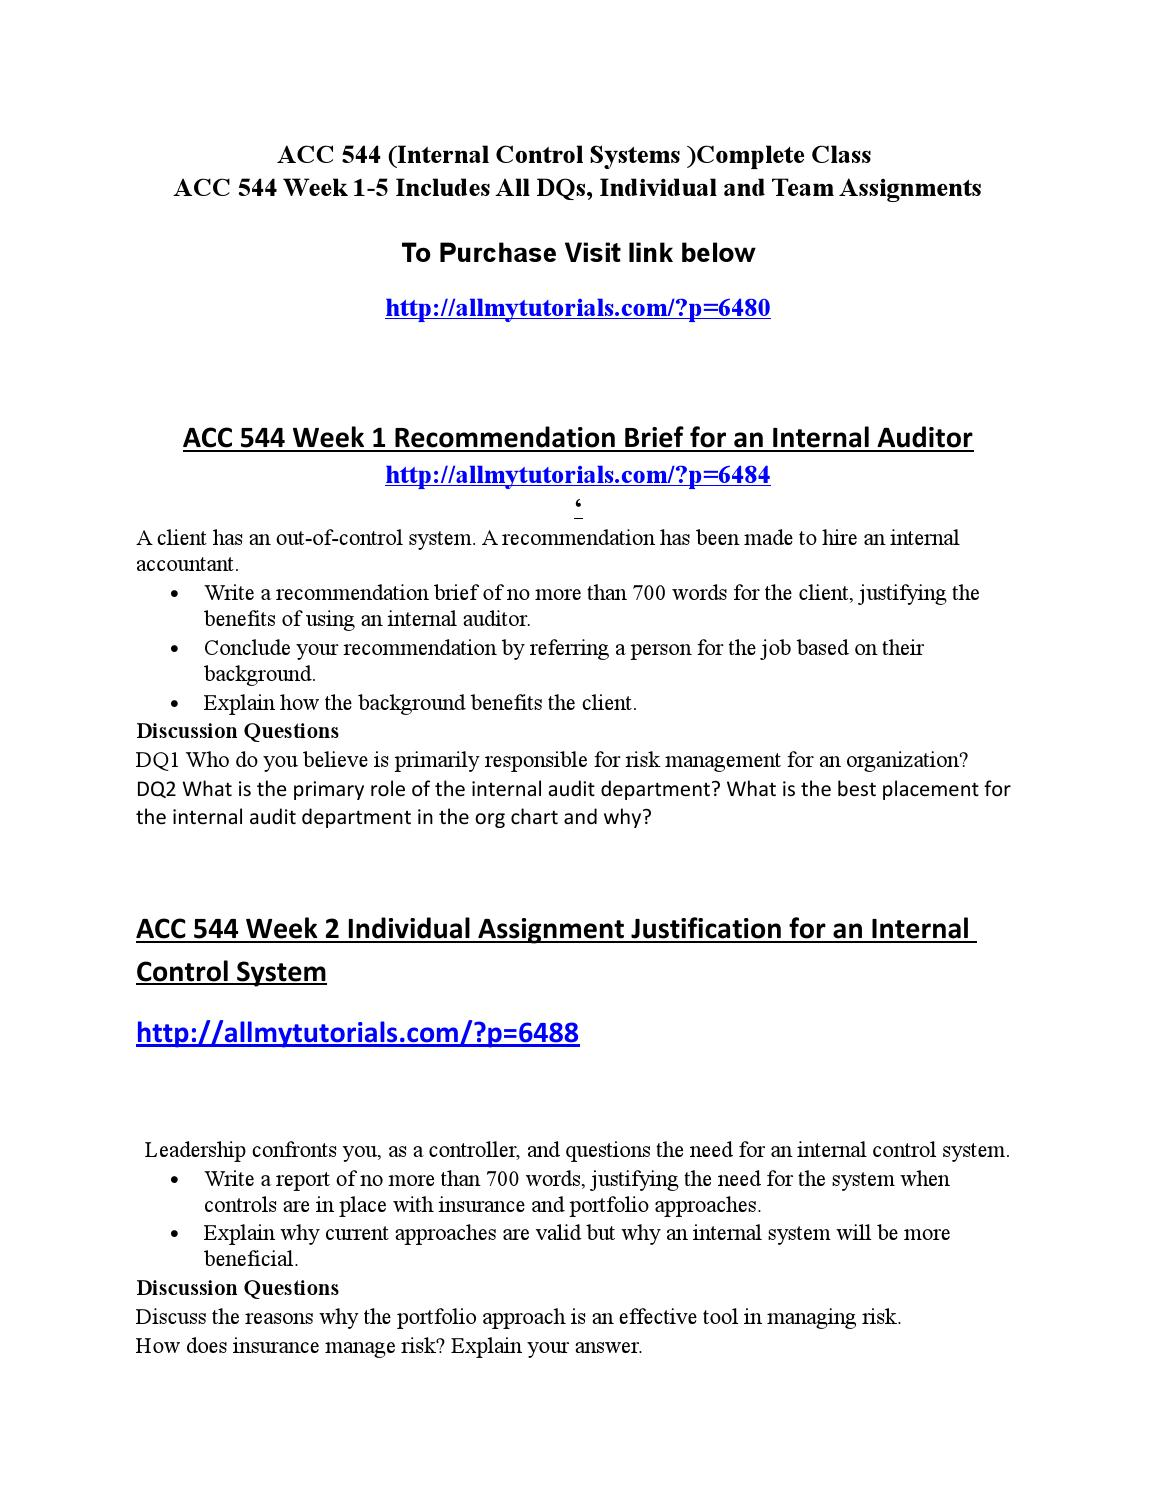 acc 544 internal accountant brief Get complete a+ tutorial here   in this file you will find  acc 544 week 1 recommendation brief for an internal auditor.